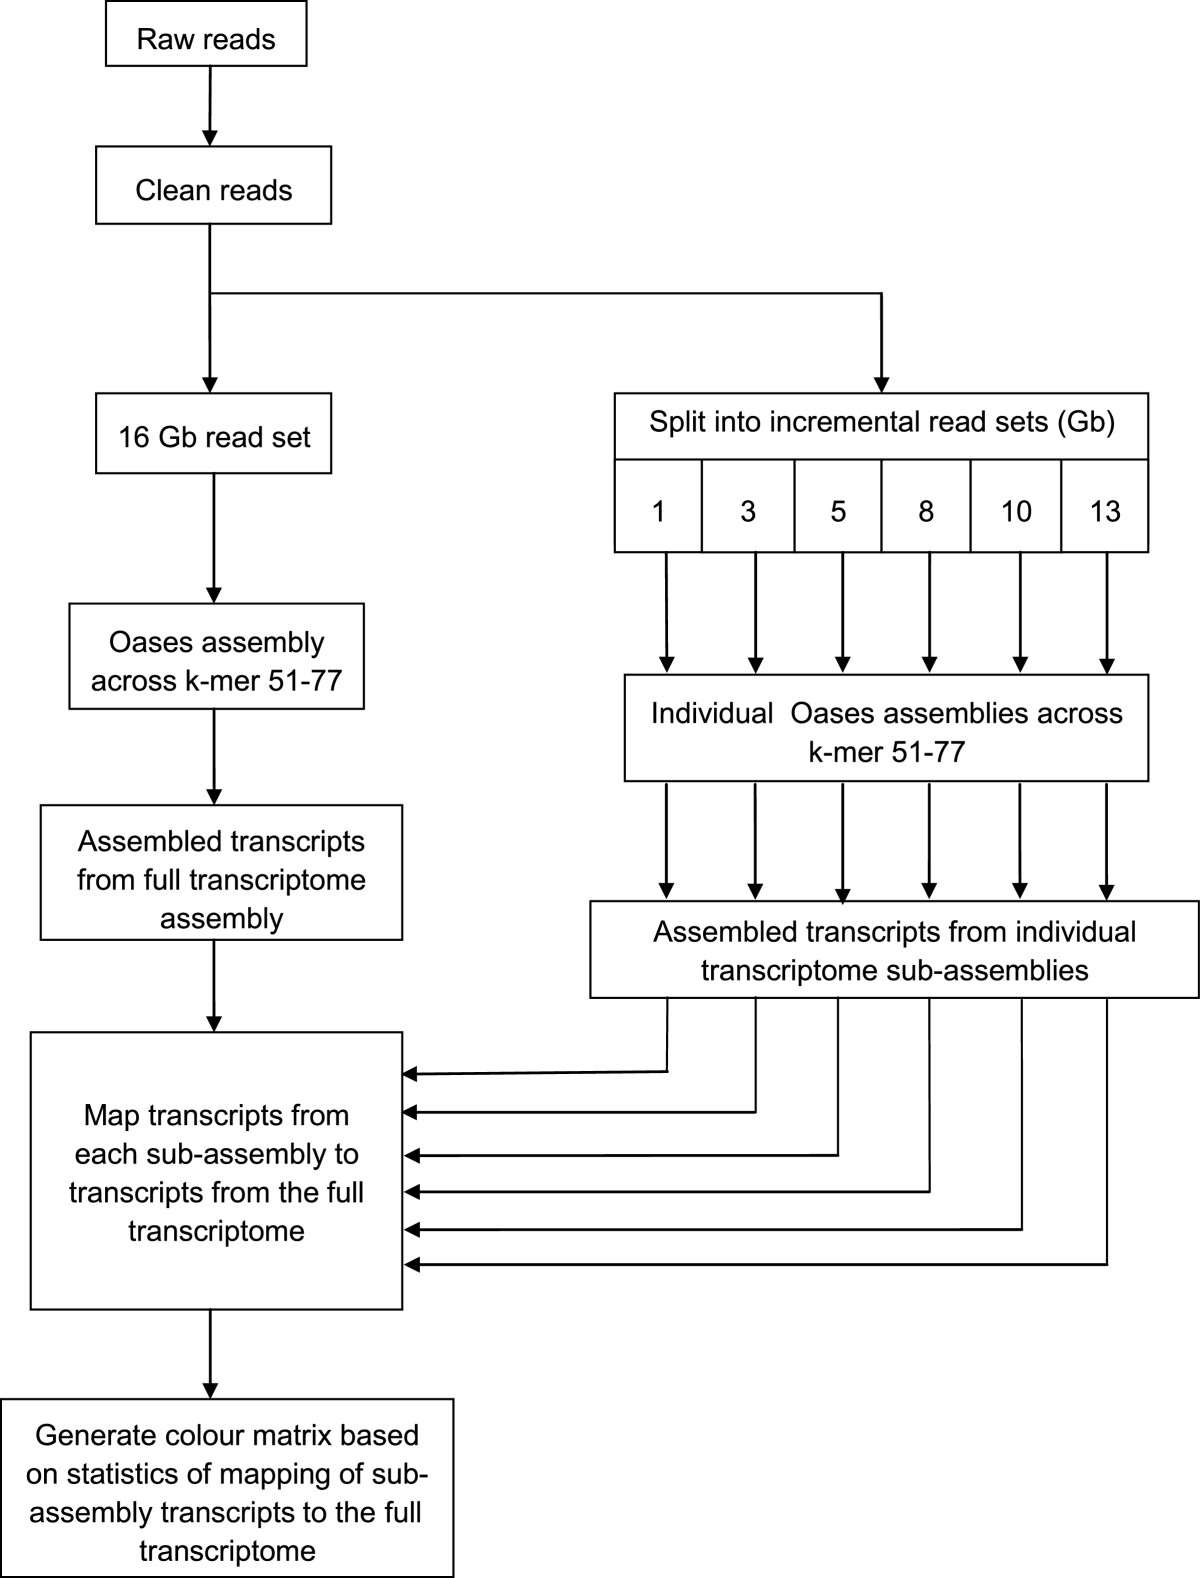 https://static-content.springer.com/image/art%3A10.1186%2F1756-0500-7-69/MediaObjects/13104_2013_Article_2649_Fig3_HTML.jpg